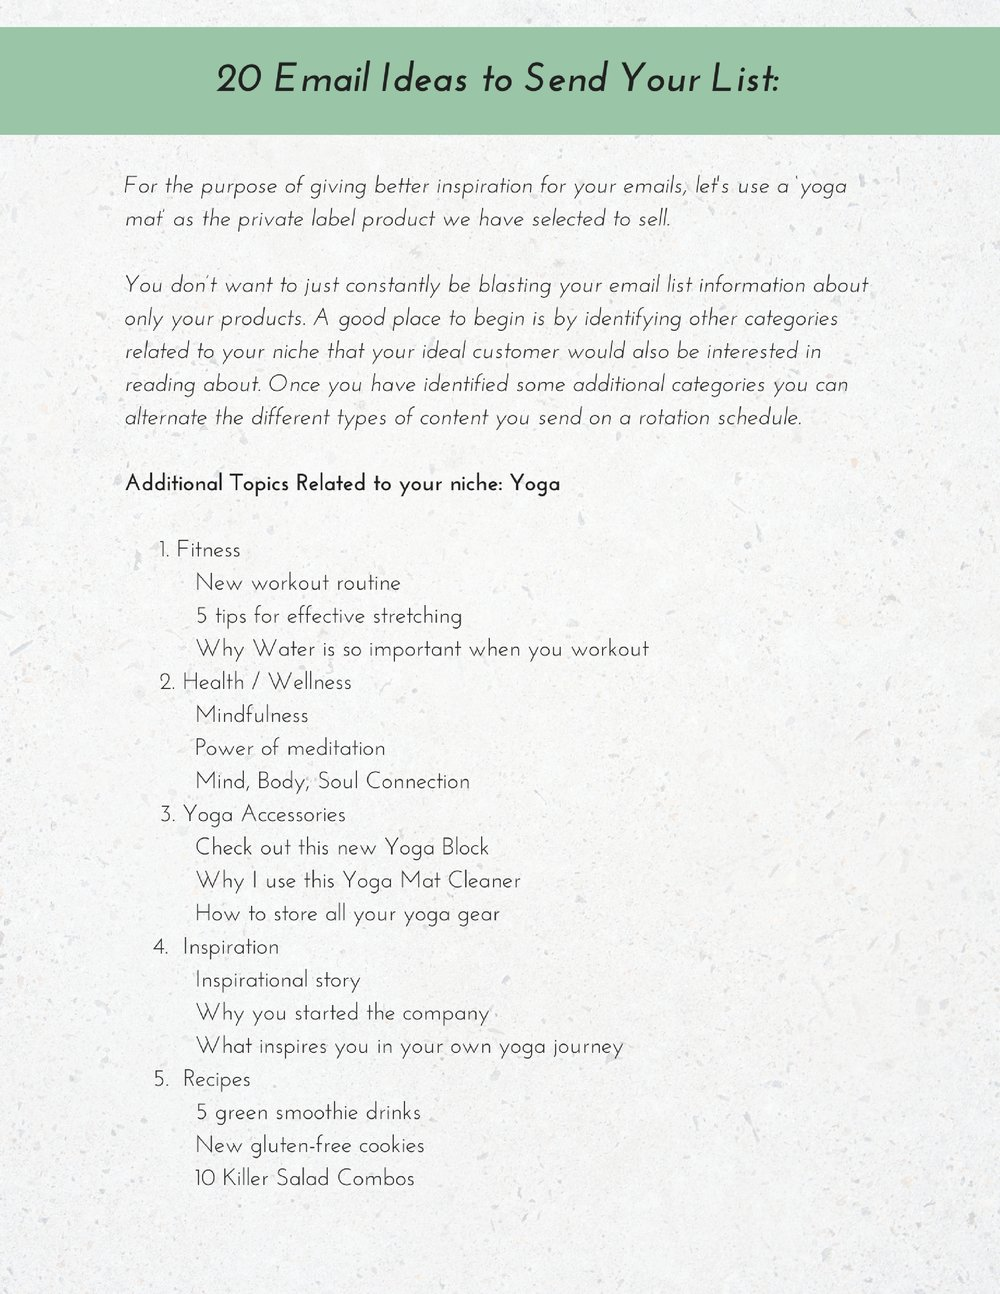 Paige Cole- 20 Email Ideas to Send Your List_.jpg